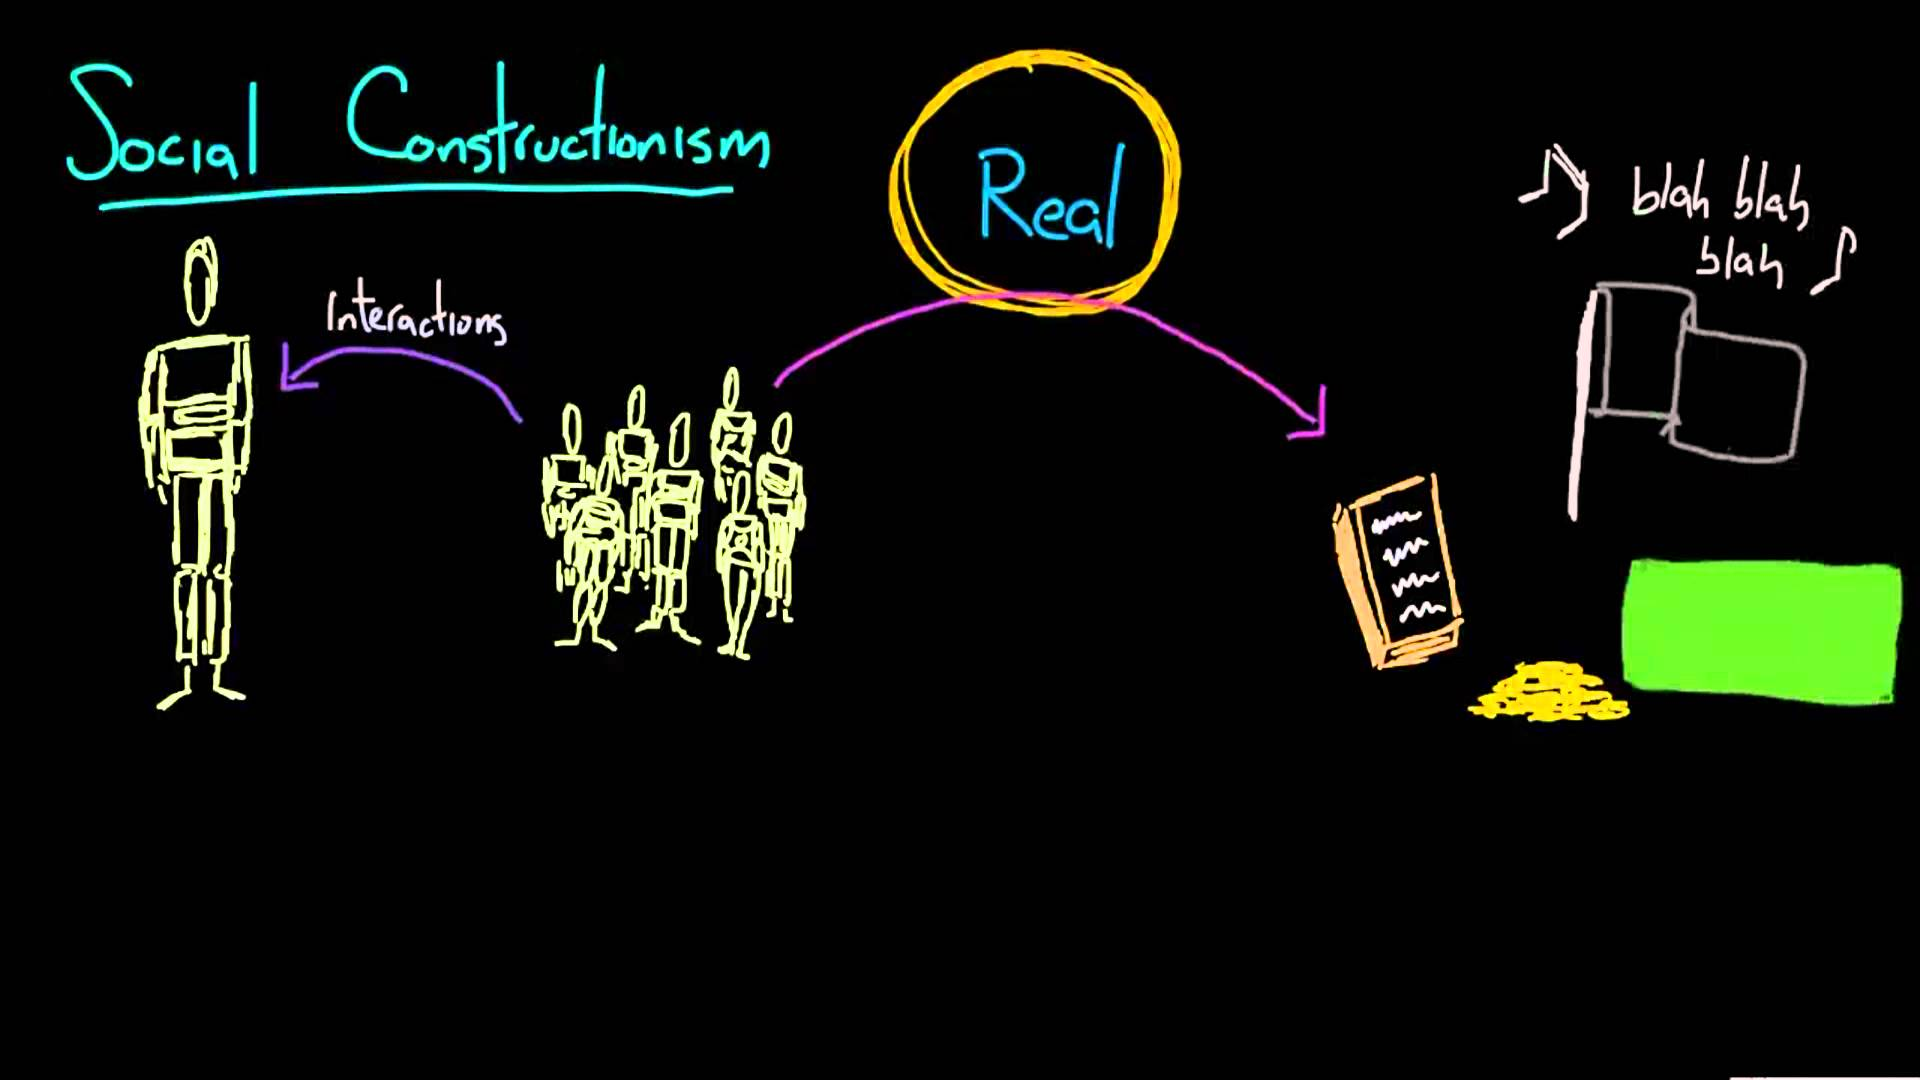 Social Constructionism - YouTube